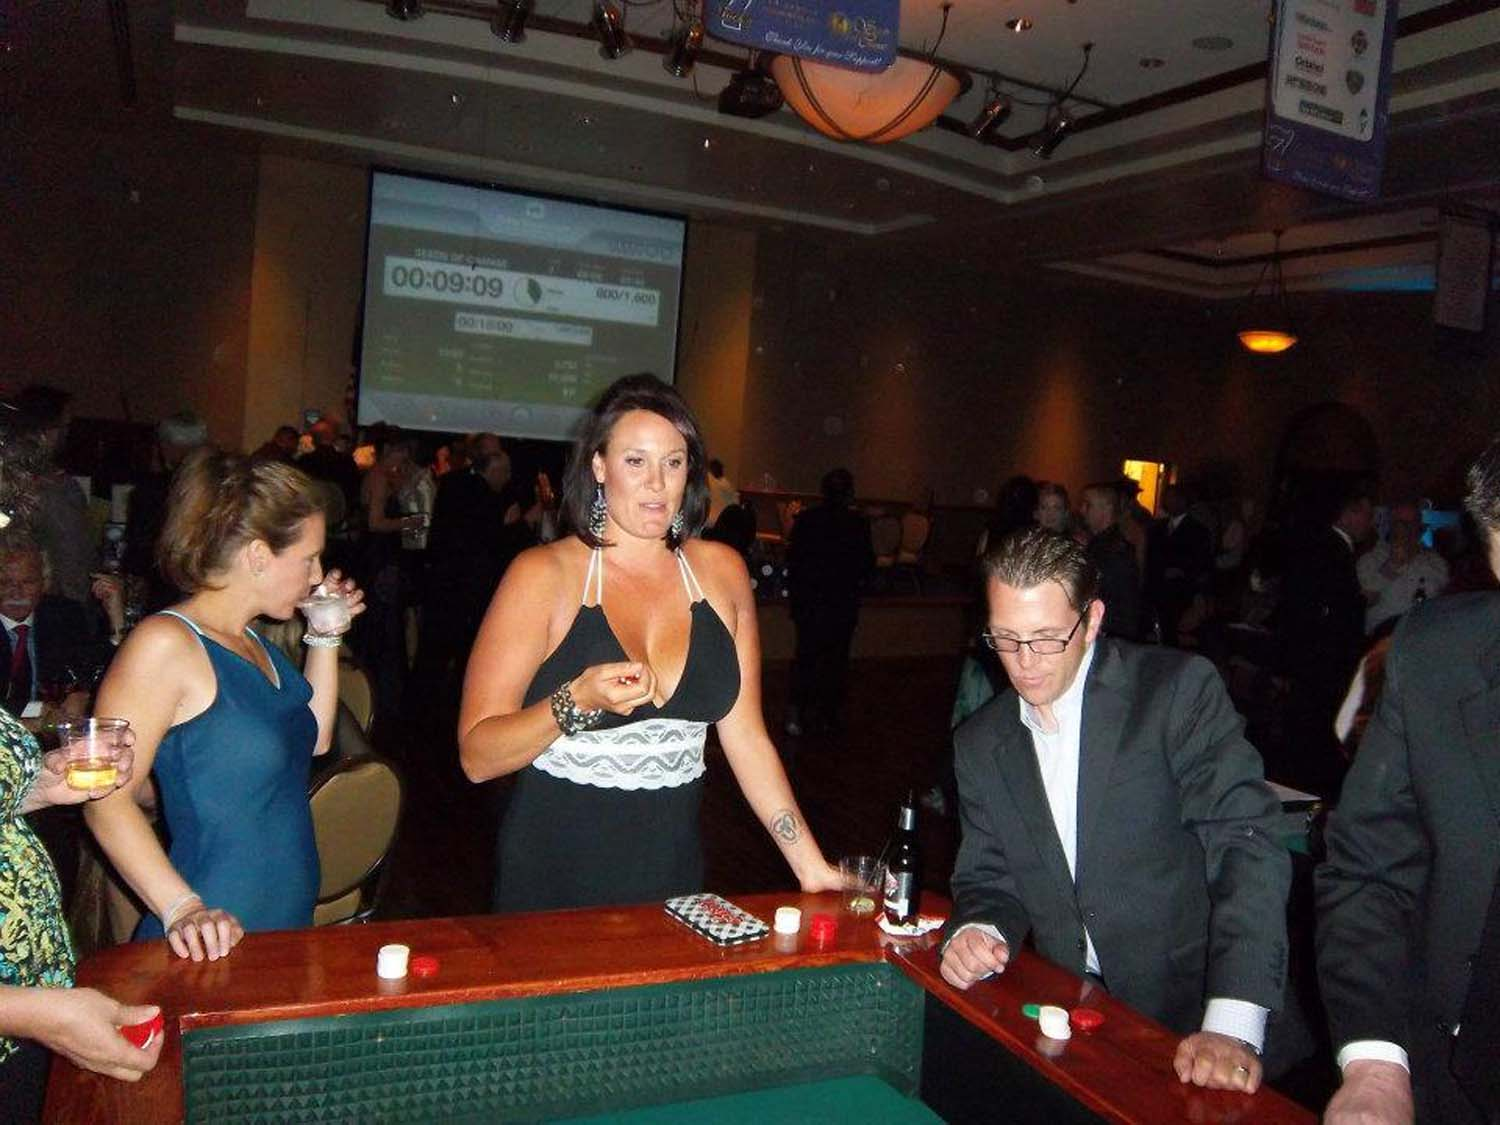 Charity Casino Night in Tucson, AZ